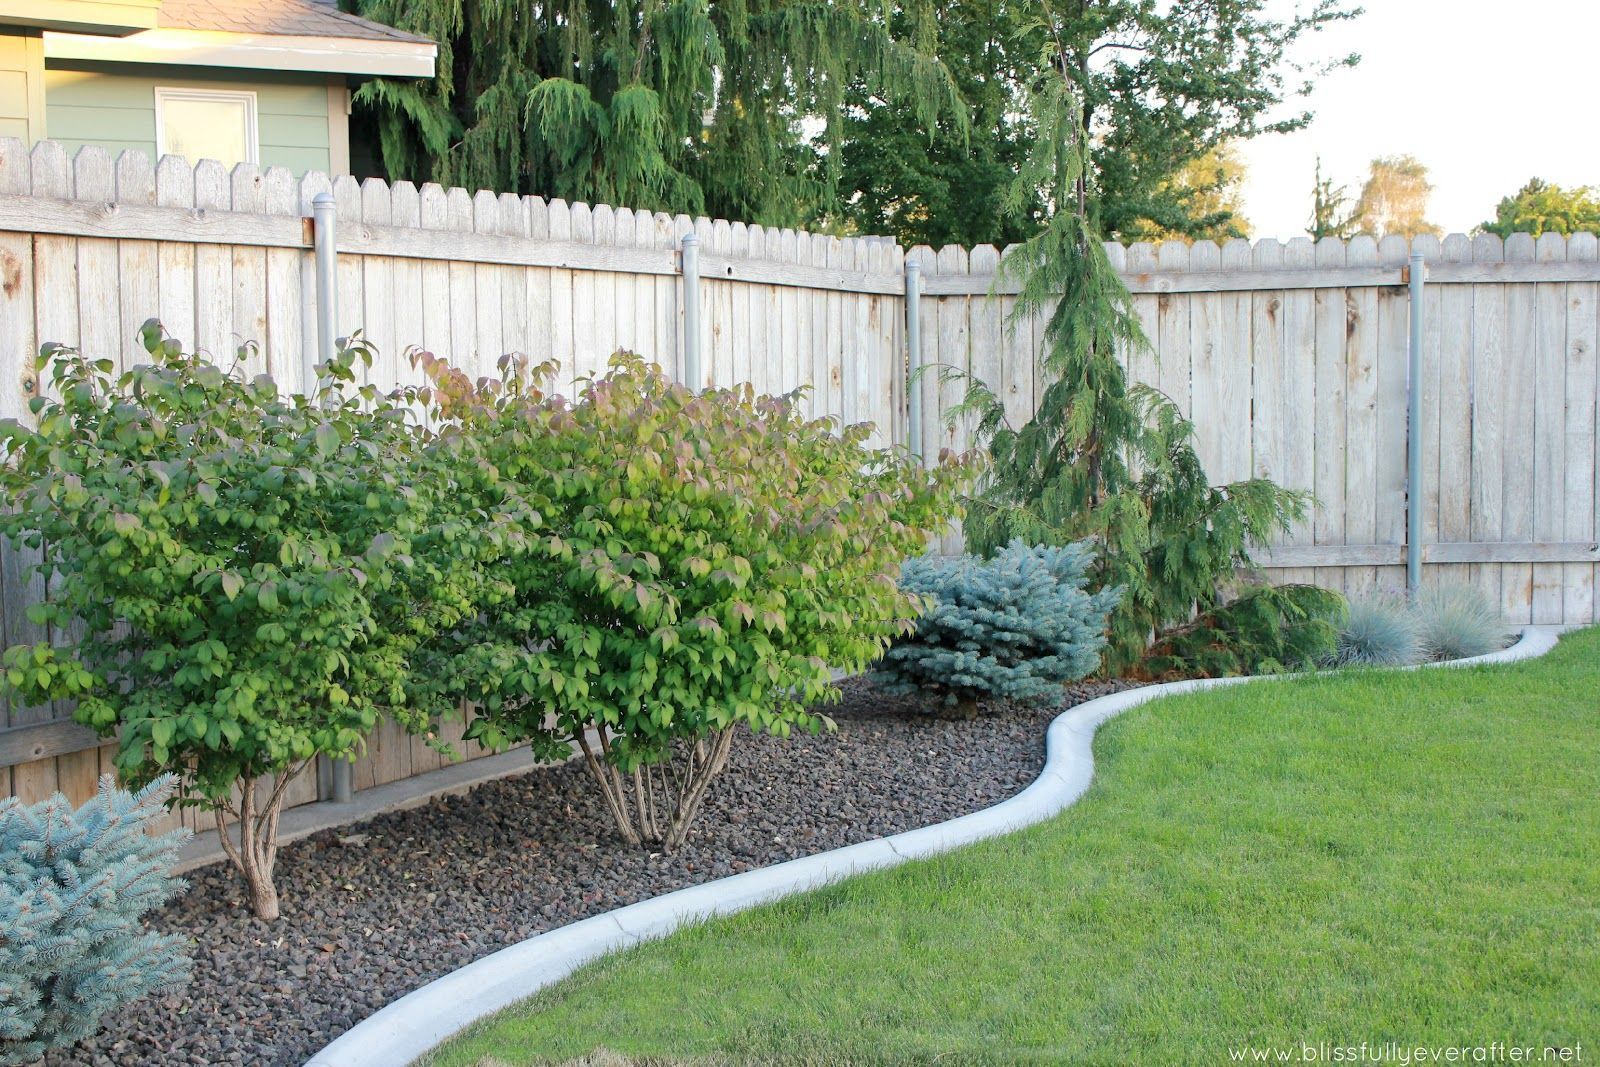 Cheap Landscaping Ideas For Back Yard Blissfully Ever After Patio with 14 Smart Initiatives of How to Makeover Inexpensive Landscaping Ideas For Backyard